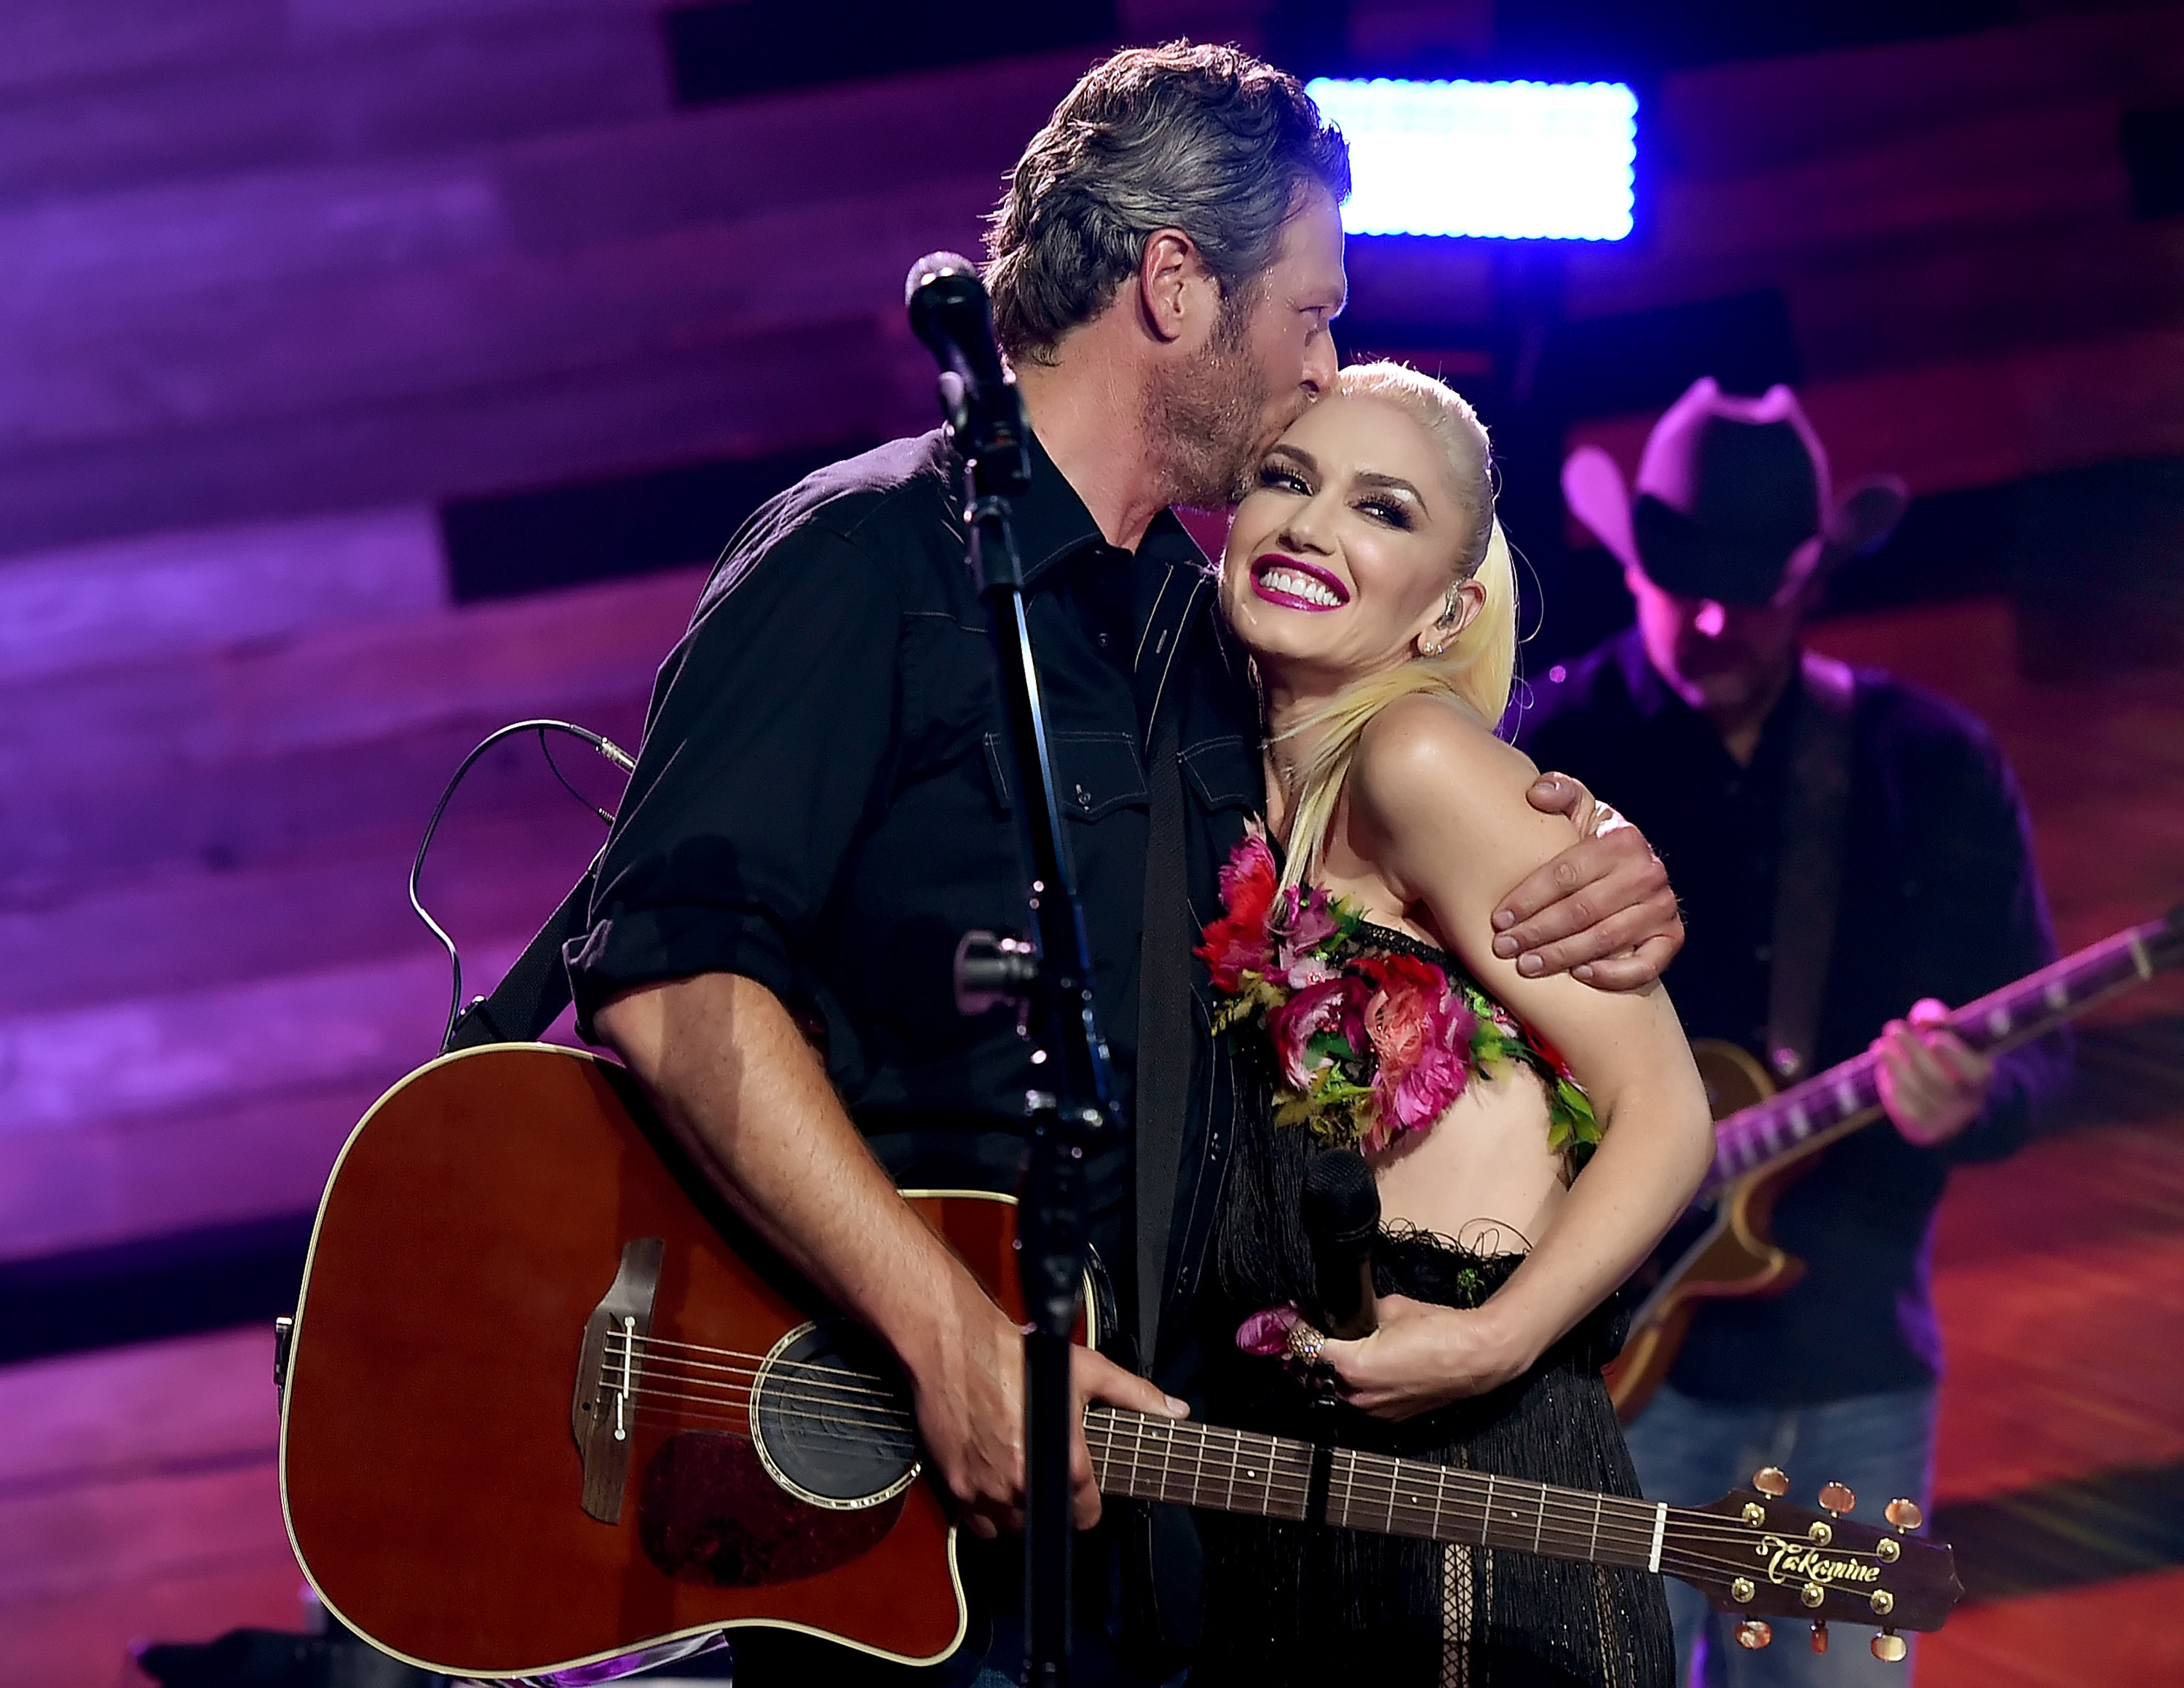 Singers Blake Shelton (L) and Gwen Stefani perform on the Honda Stage at the iHeartRadio Theater on May 9, 2016 in Burbank, California. (Photo by Kevin Winter/Getty Images for iHeartMedia)